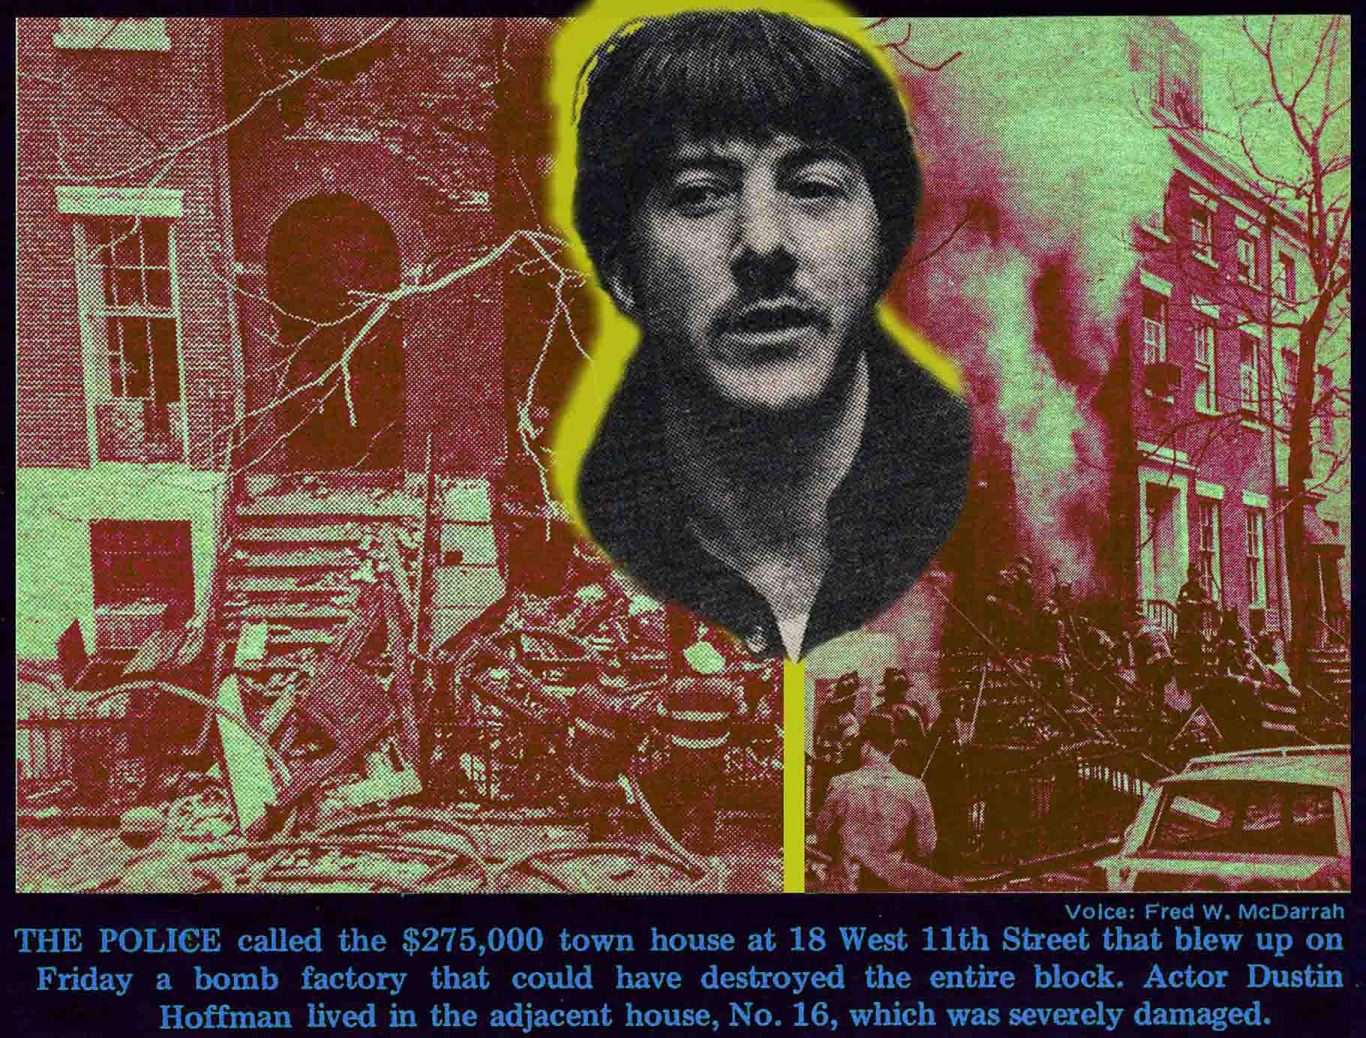 1970 Village Voice article by Ron Rosenbaum about the Weathermen blowing up a townhouse on 11th Street